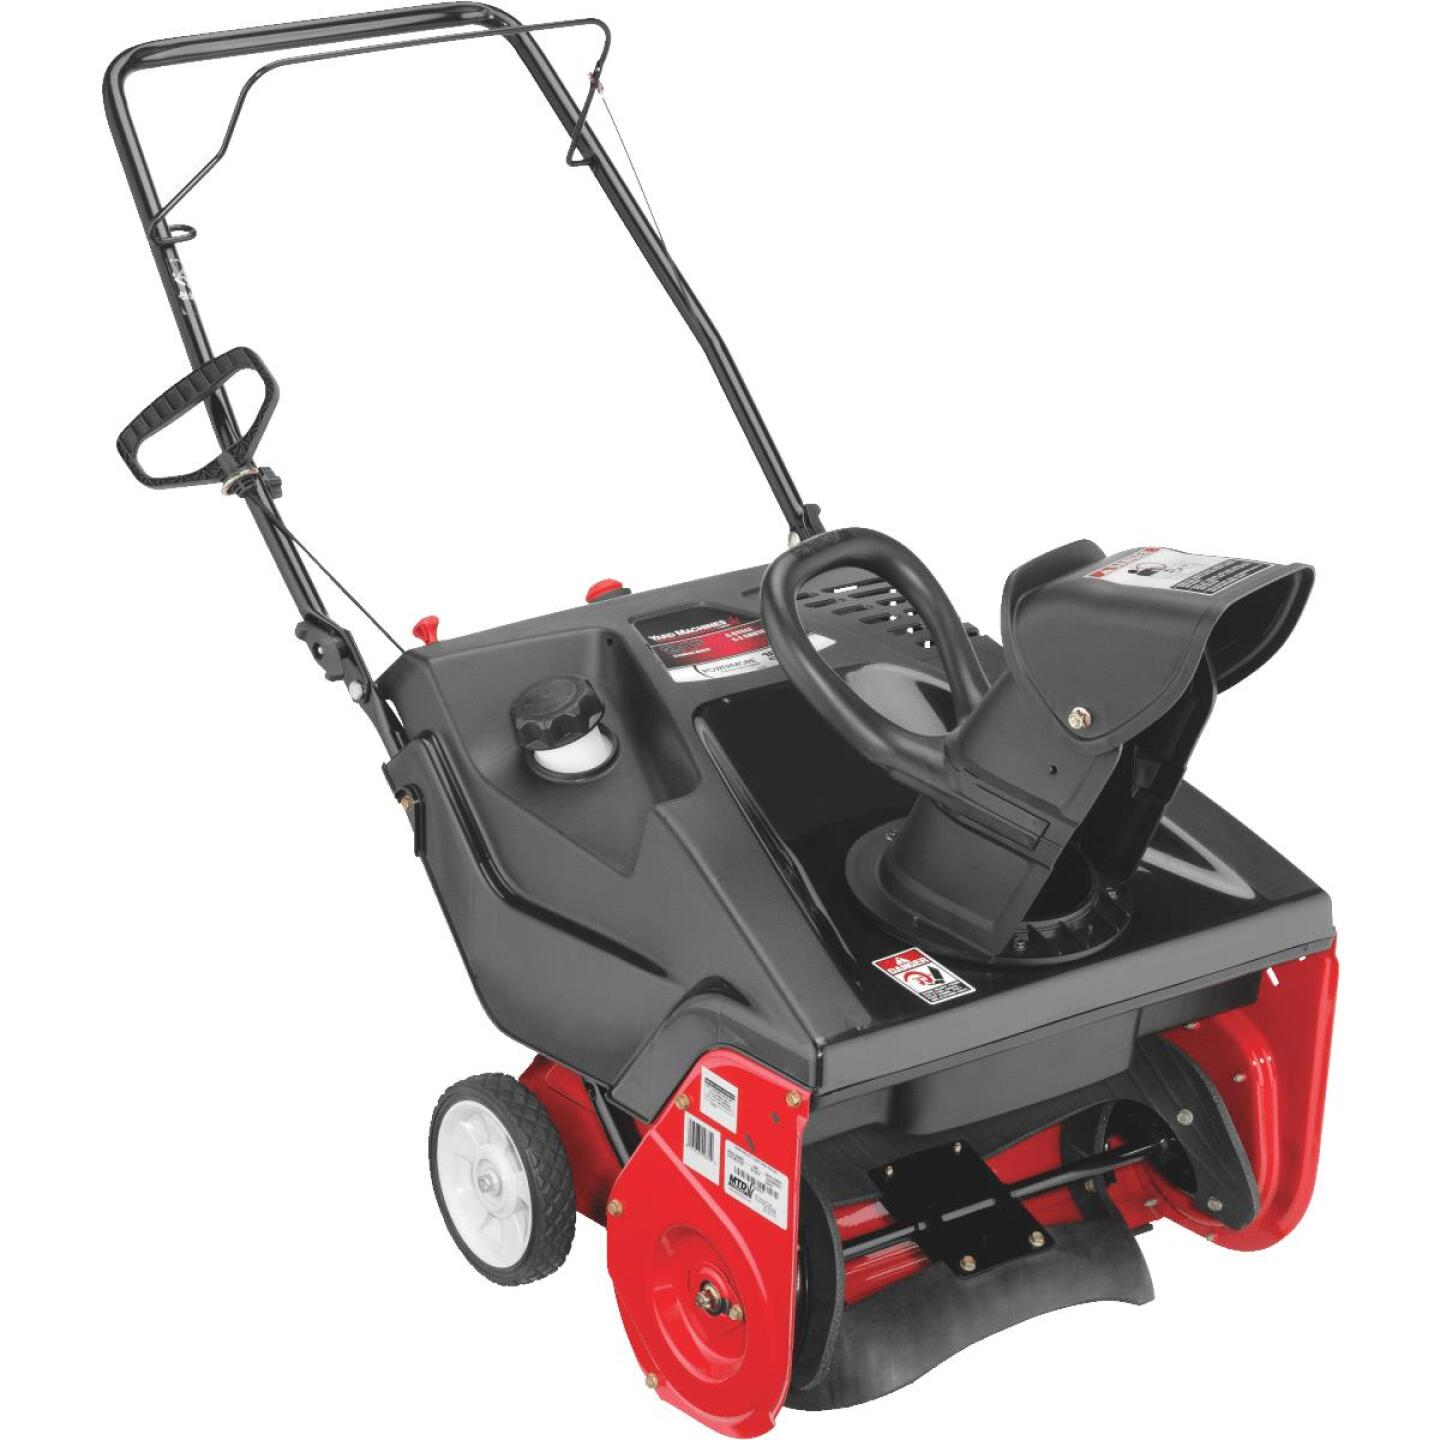 Troy-Bilt Squall 123R 21 In. 123cc Single-Stage Gas Snow Blower Image 1